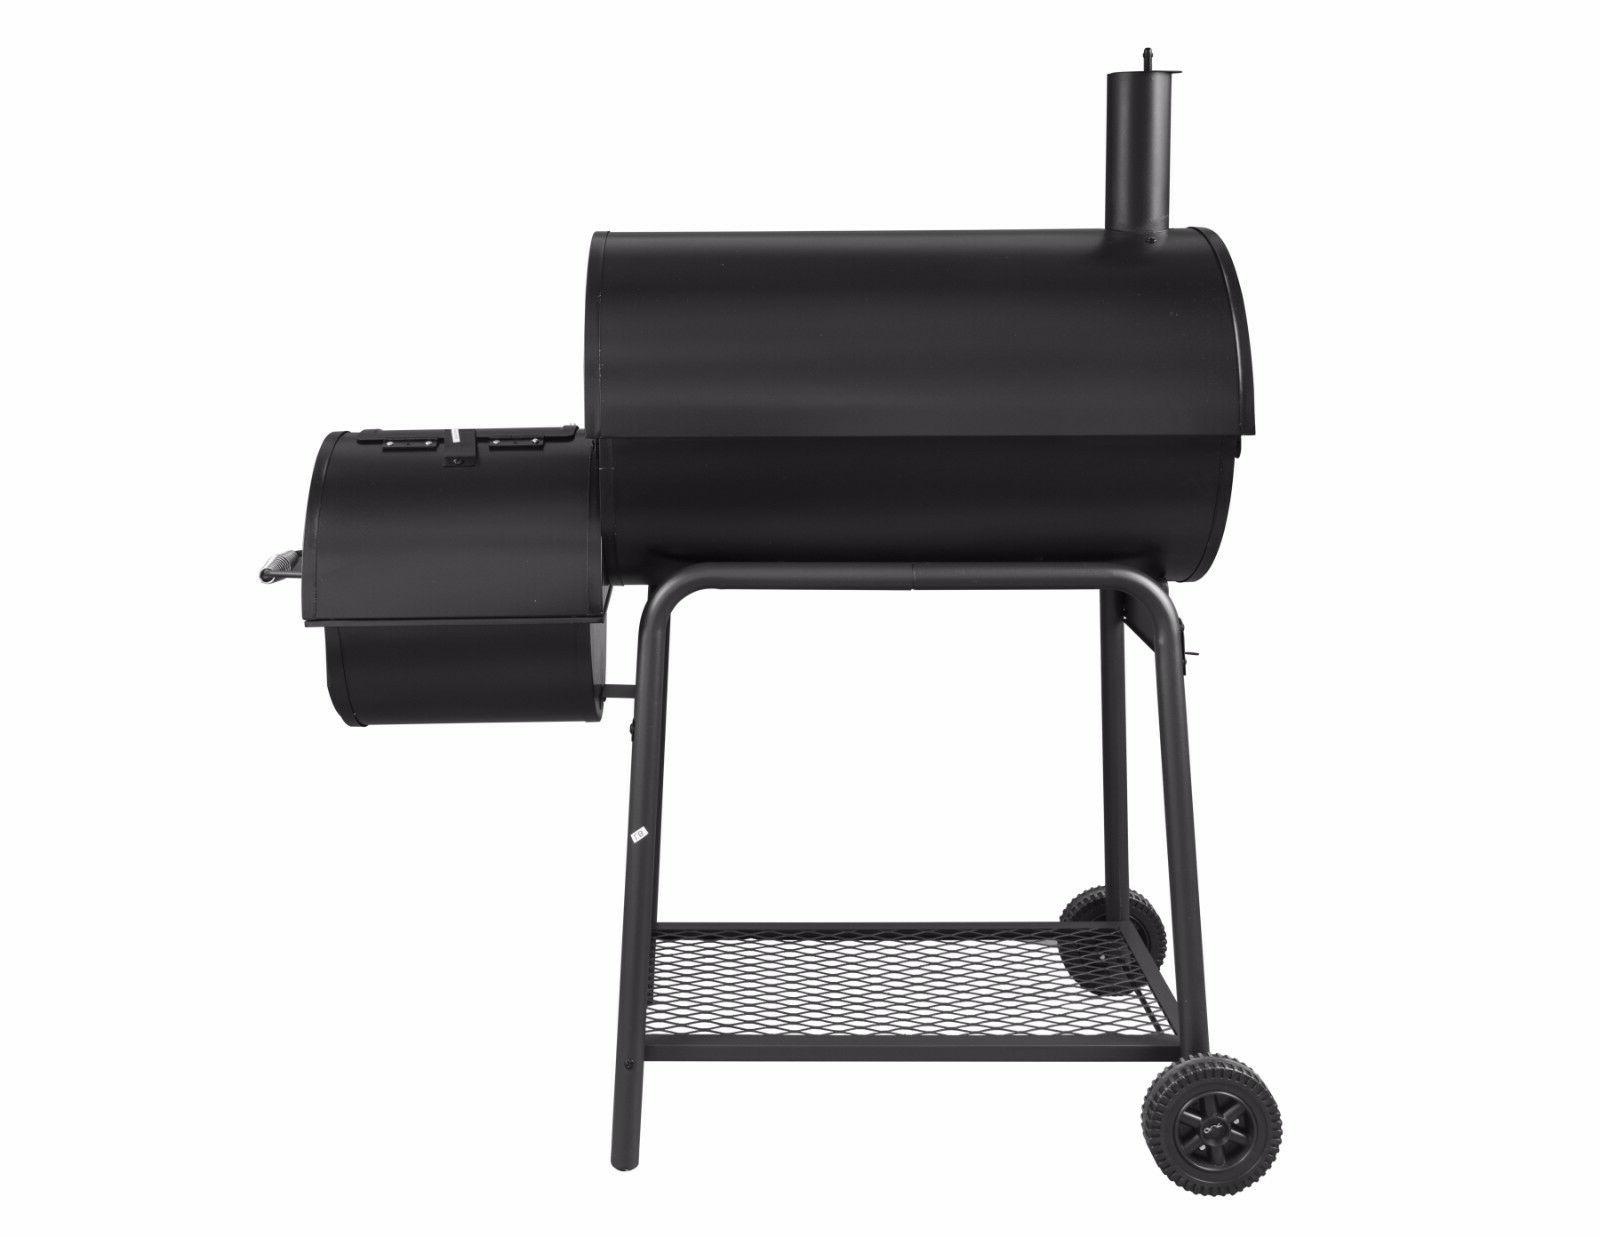 Royal Charcoal Offset Smoker CC1830F with Cover Space